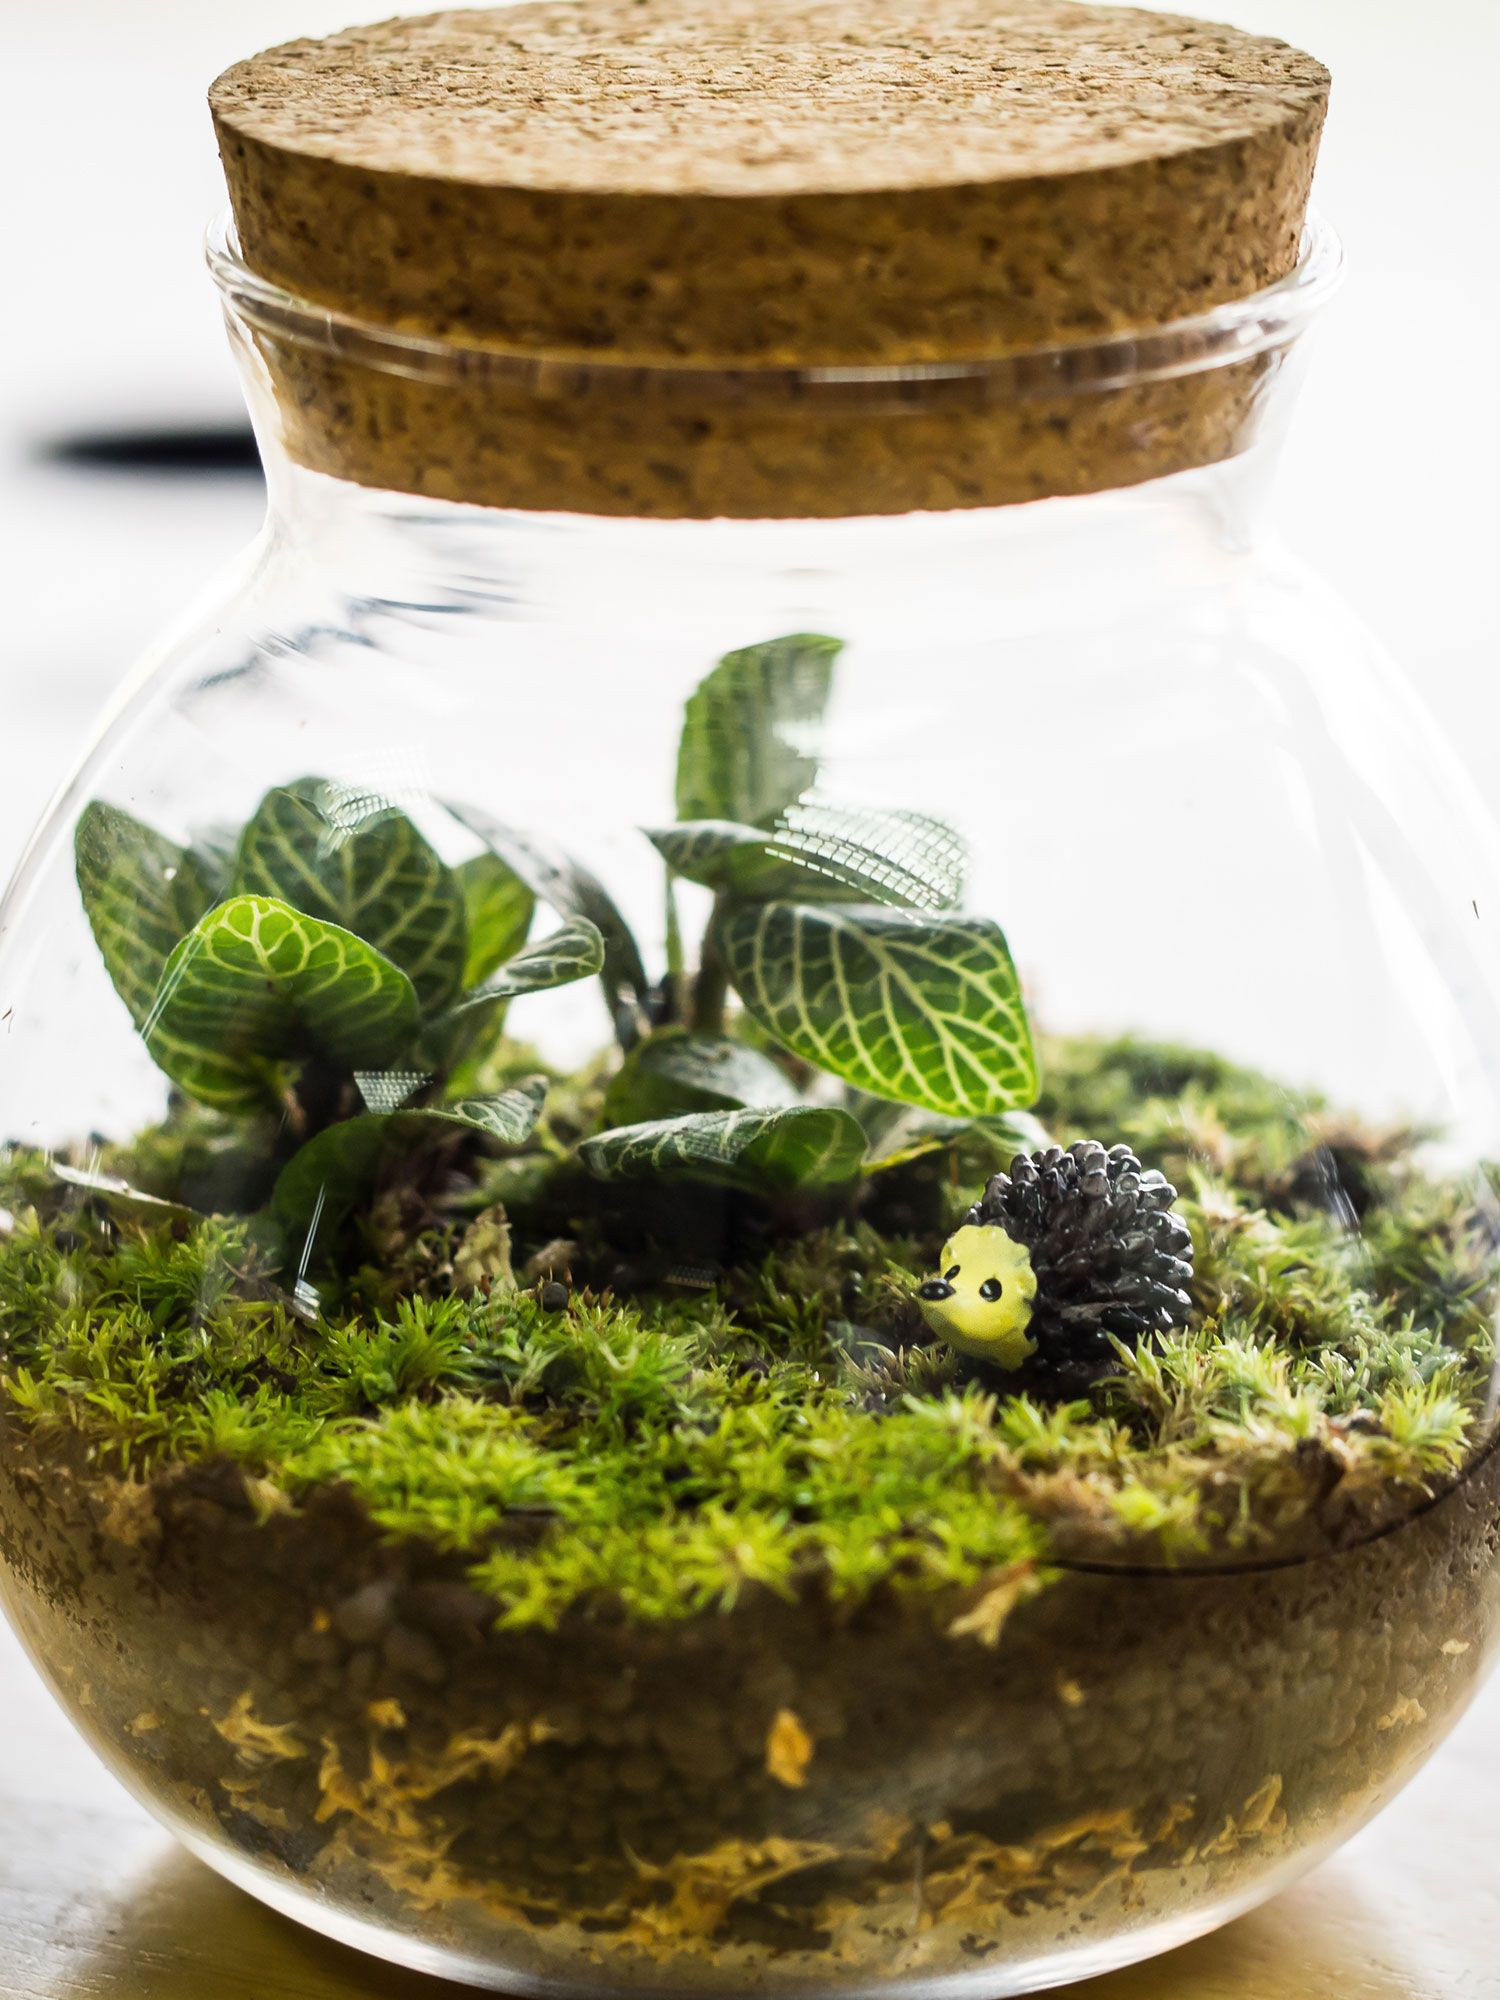 How To Make A Self Sustaining Terrarium Terrarium Rasteniya Mini